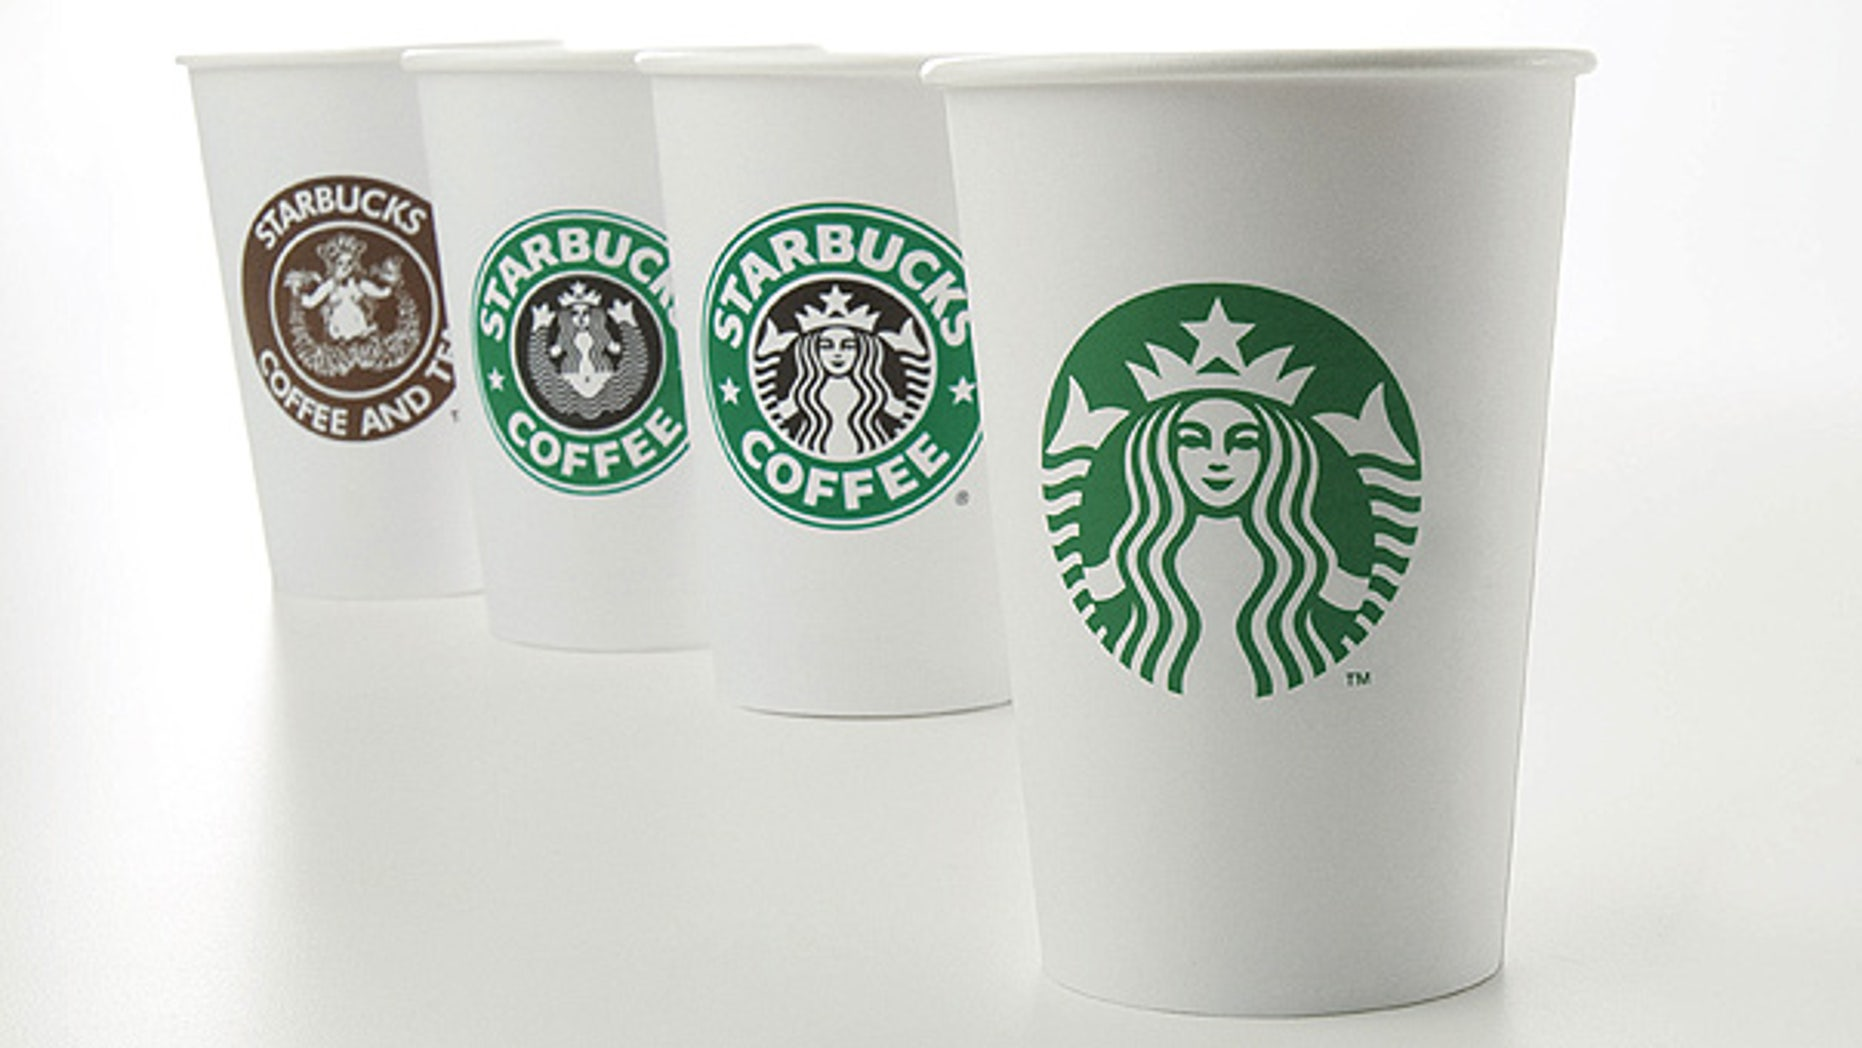 Starbucks' new 40-year anniversary logo is seen on a cup at right. The coffee giant is testing a new, super-expensive Costa Rica Finca Palmilera brew that sells for $7 a pop.